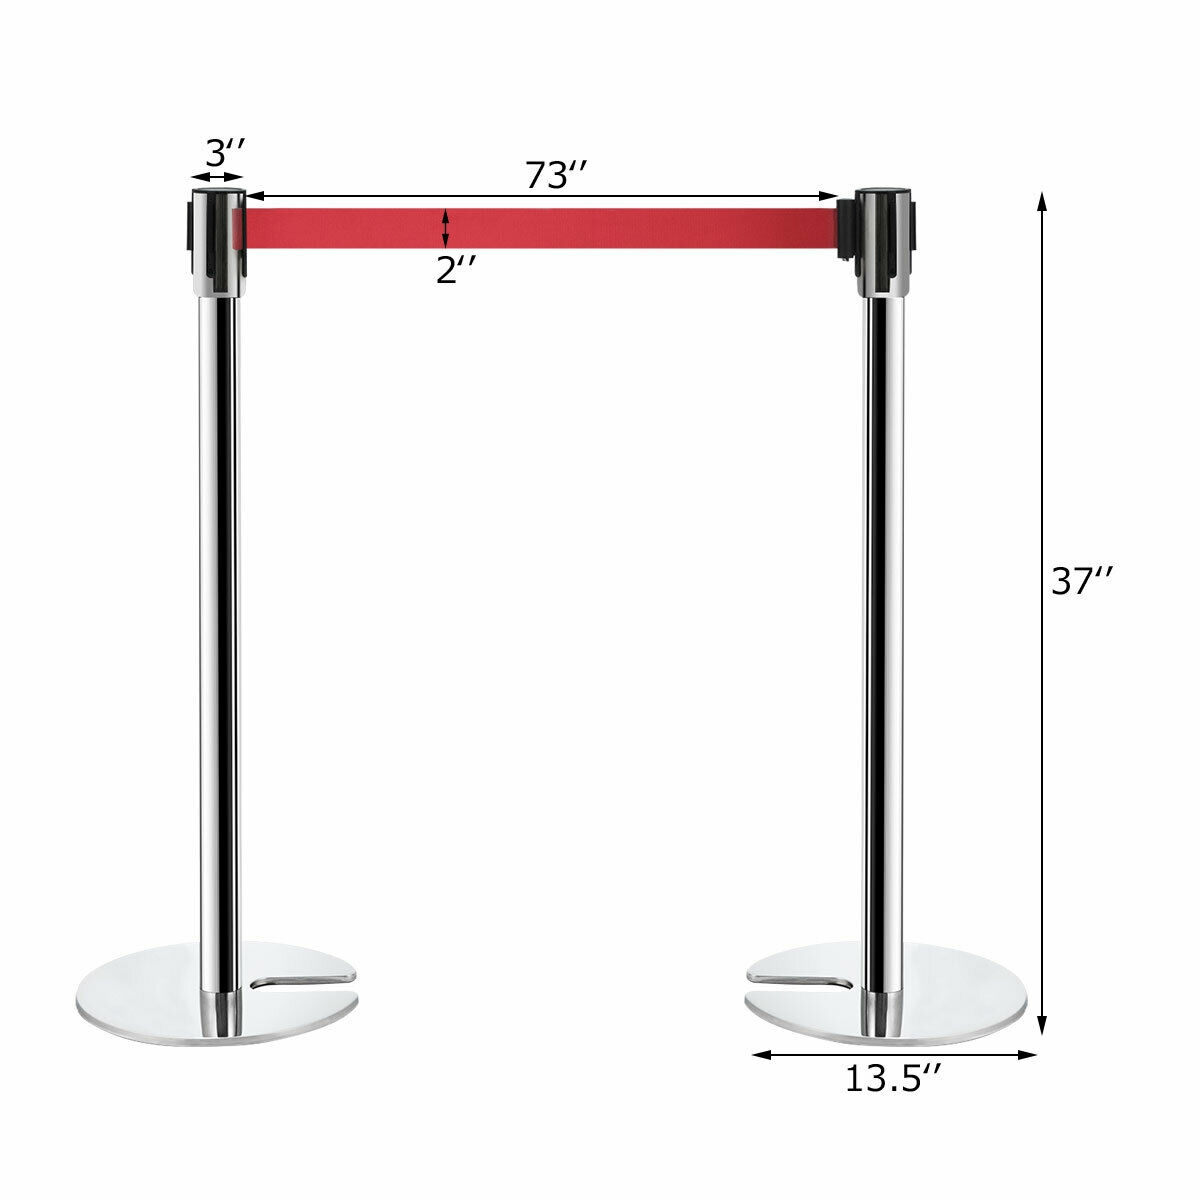 6 pcs Silver Stanchion Posts Retractable Belt Crowd Control Barrier